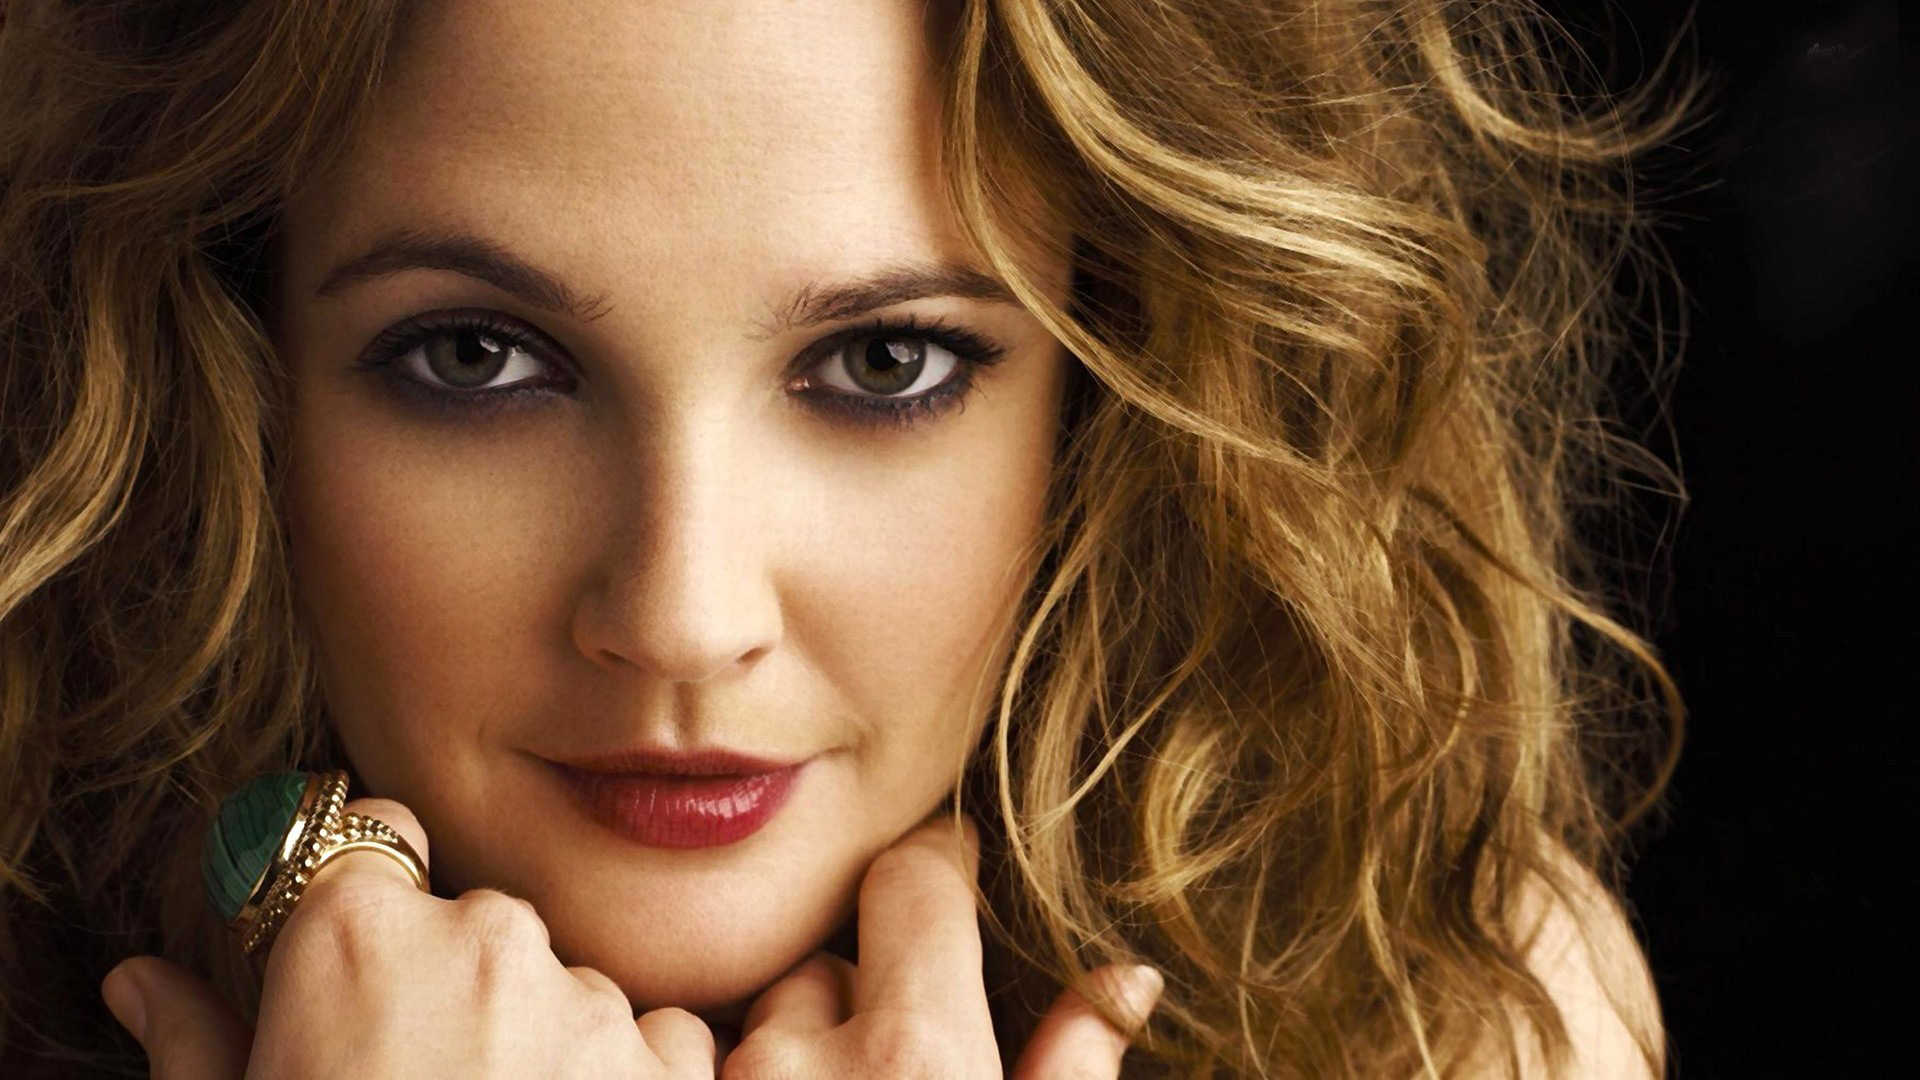 Drew Barrymore Wallpapers High Resolution And Quality Download